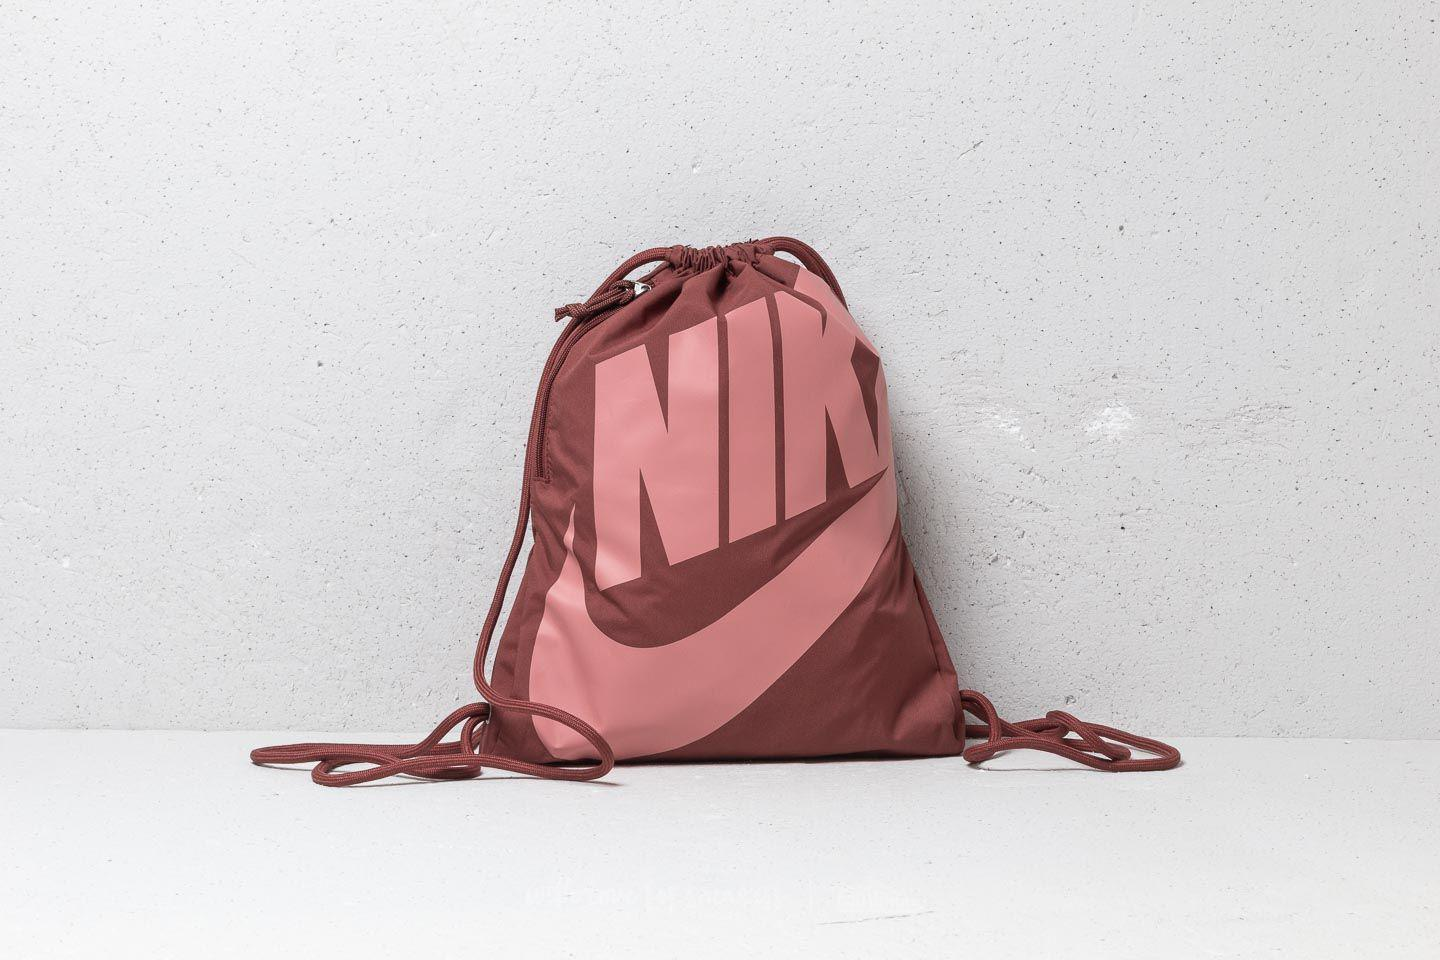 67247c29c2f34 Nike Heritage Gymsack Red Sepia rust Pink in Red - Lyst